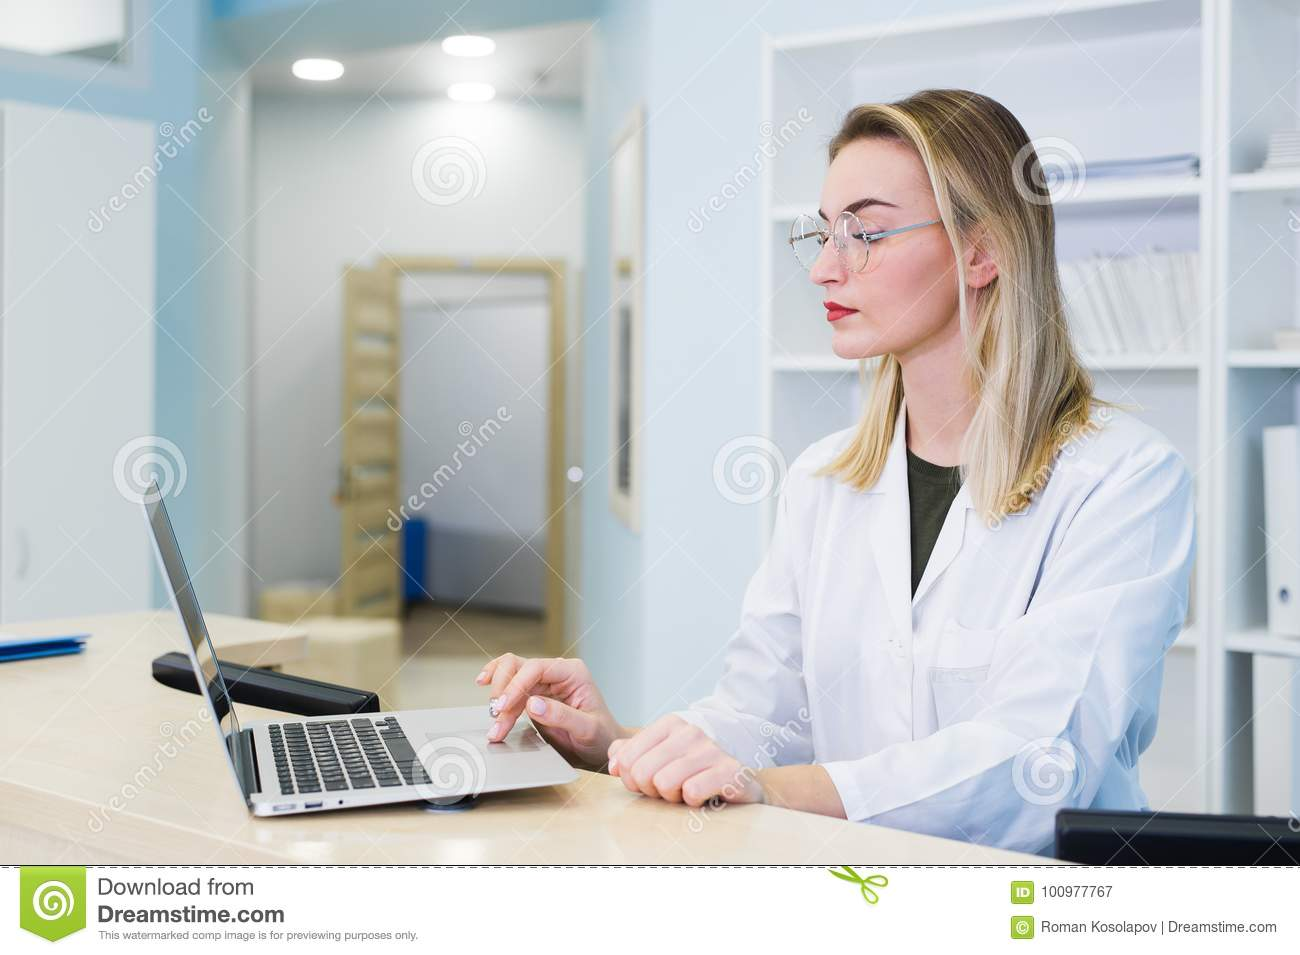 Smiling female doctor wearing a scrub and working at the hospital reception, she is writing a medical report on a